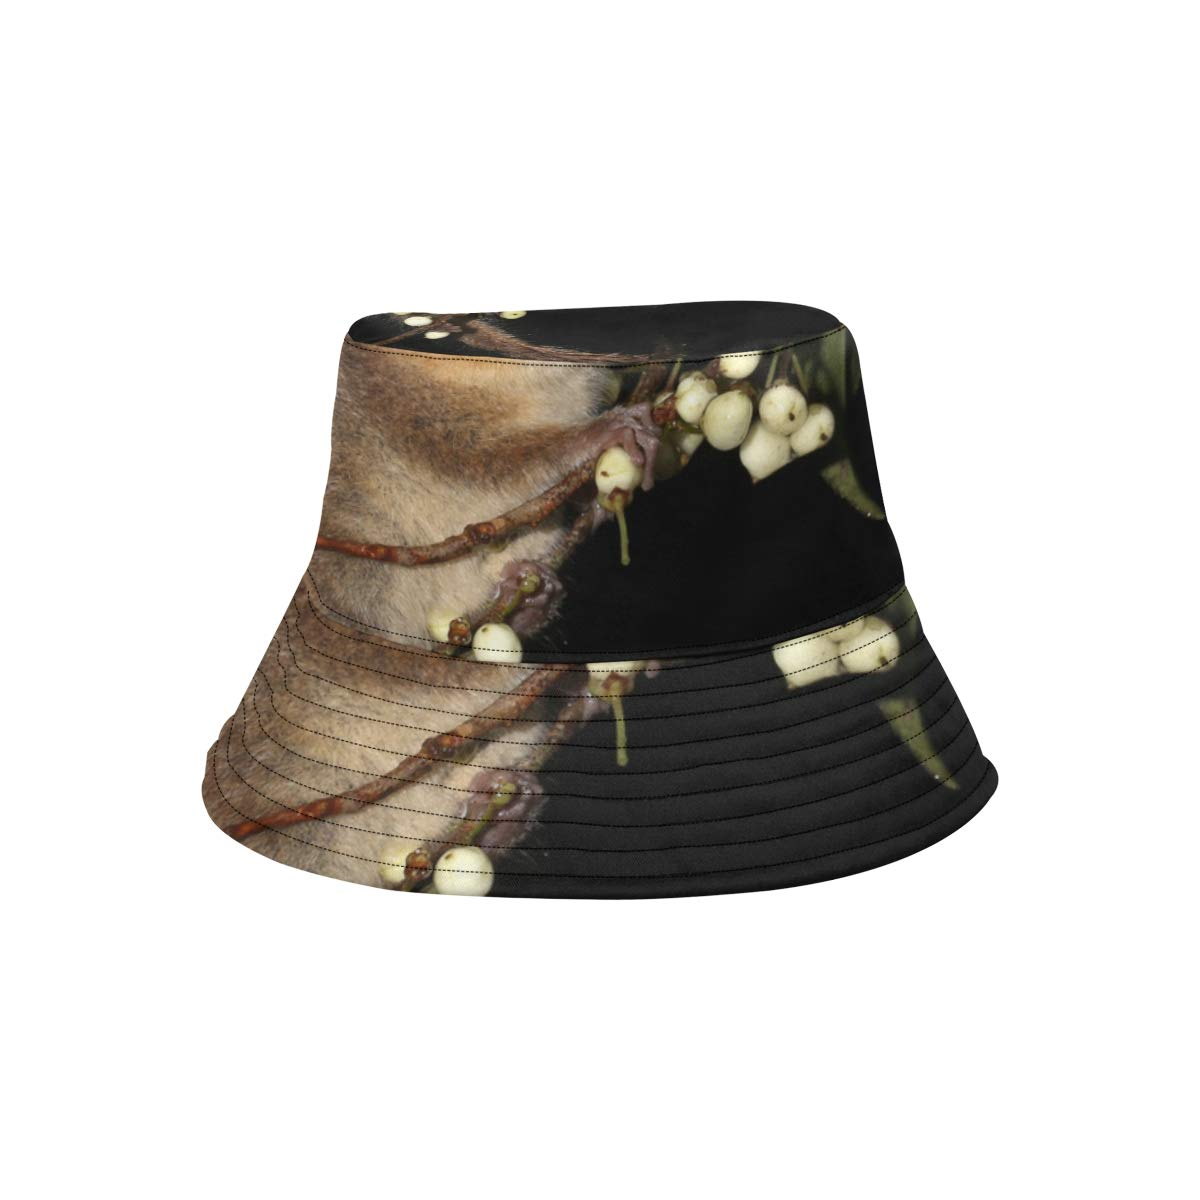 Petite and Pleasant Finger Monkey New Summer Unisex Cotton Fashion Fishing Sun Bucket Hats for Kid Teens Women and Men with Customize Top Packable Fisherman Cap for Outdoor Travel